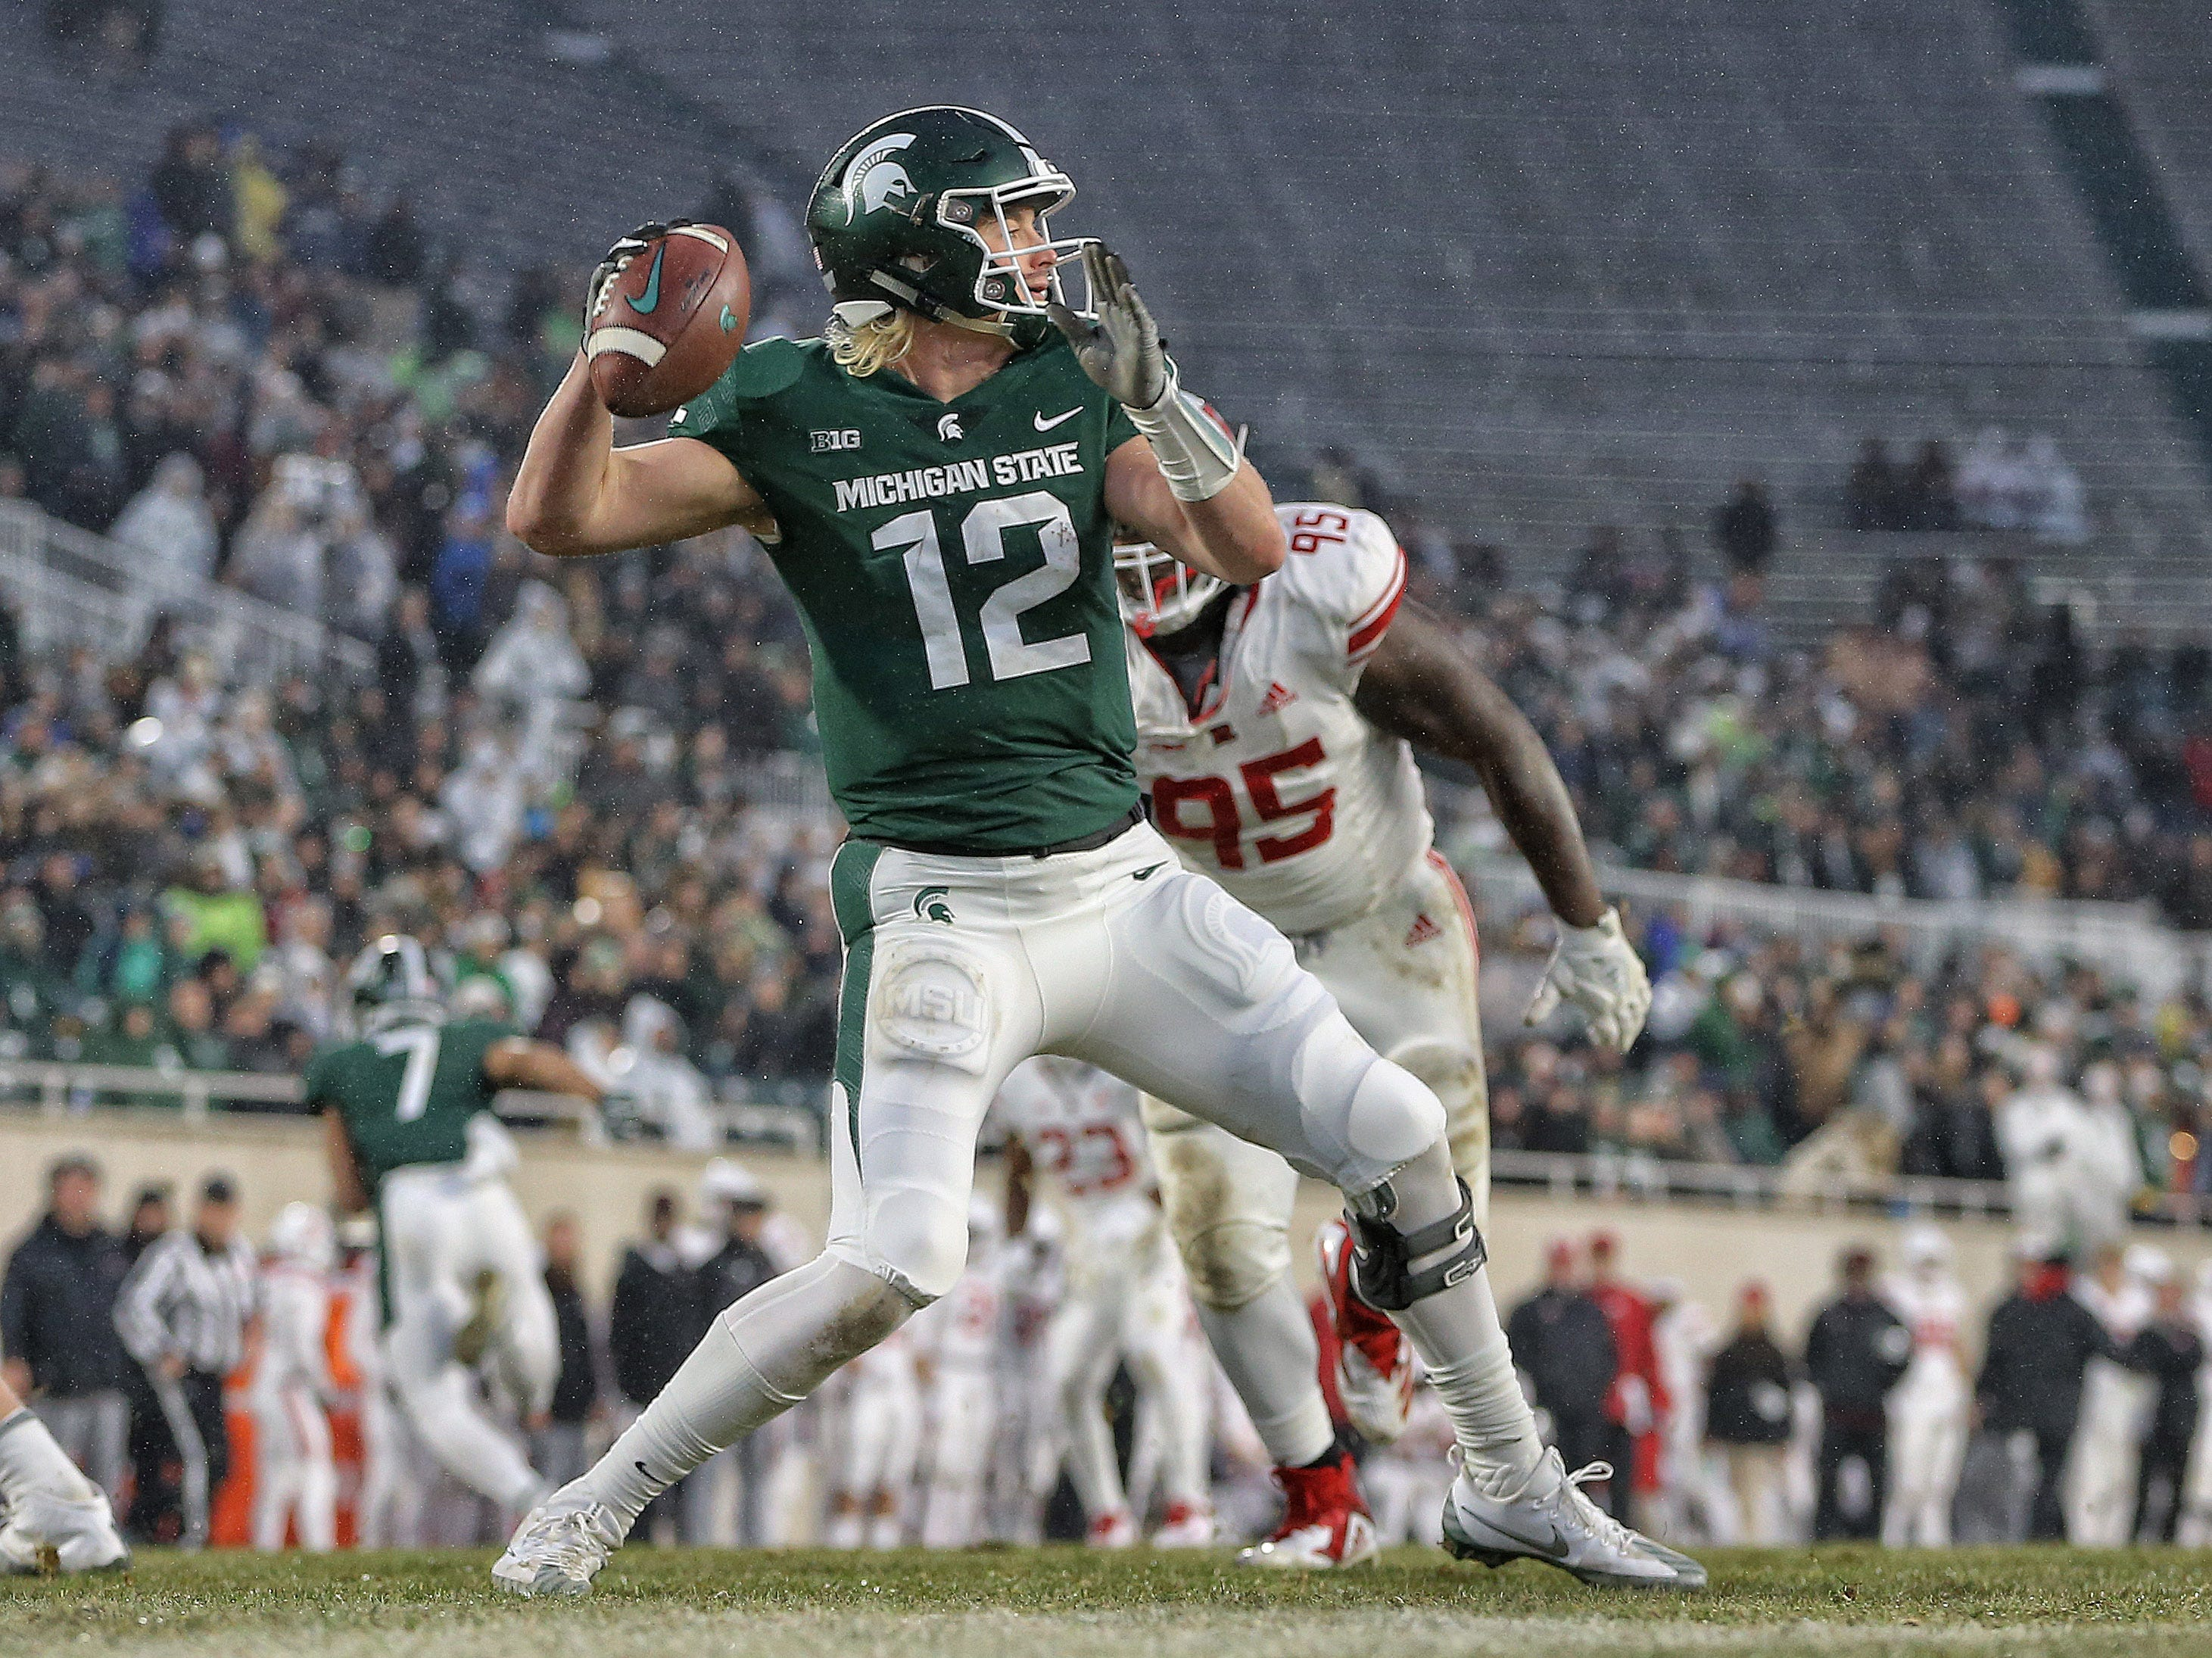 Nov 24, 2018; East Lansing, MI, USA; Michigan State Spartans quarterback Rocky Lombardi (12) drops back to throw a pass during the first half against the Rutgers Scarlet Knights at Spartan Stadium. Mandatory Credit: Mike Carter-USA TODAY Sports